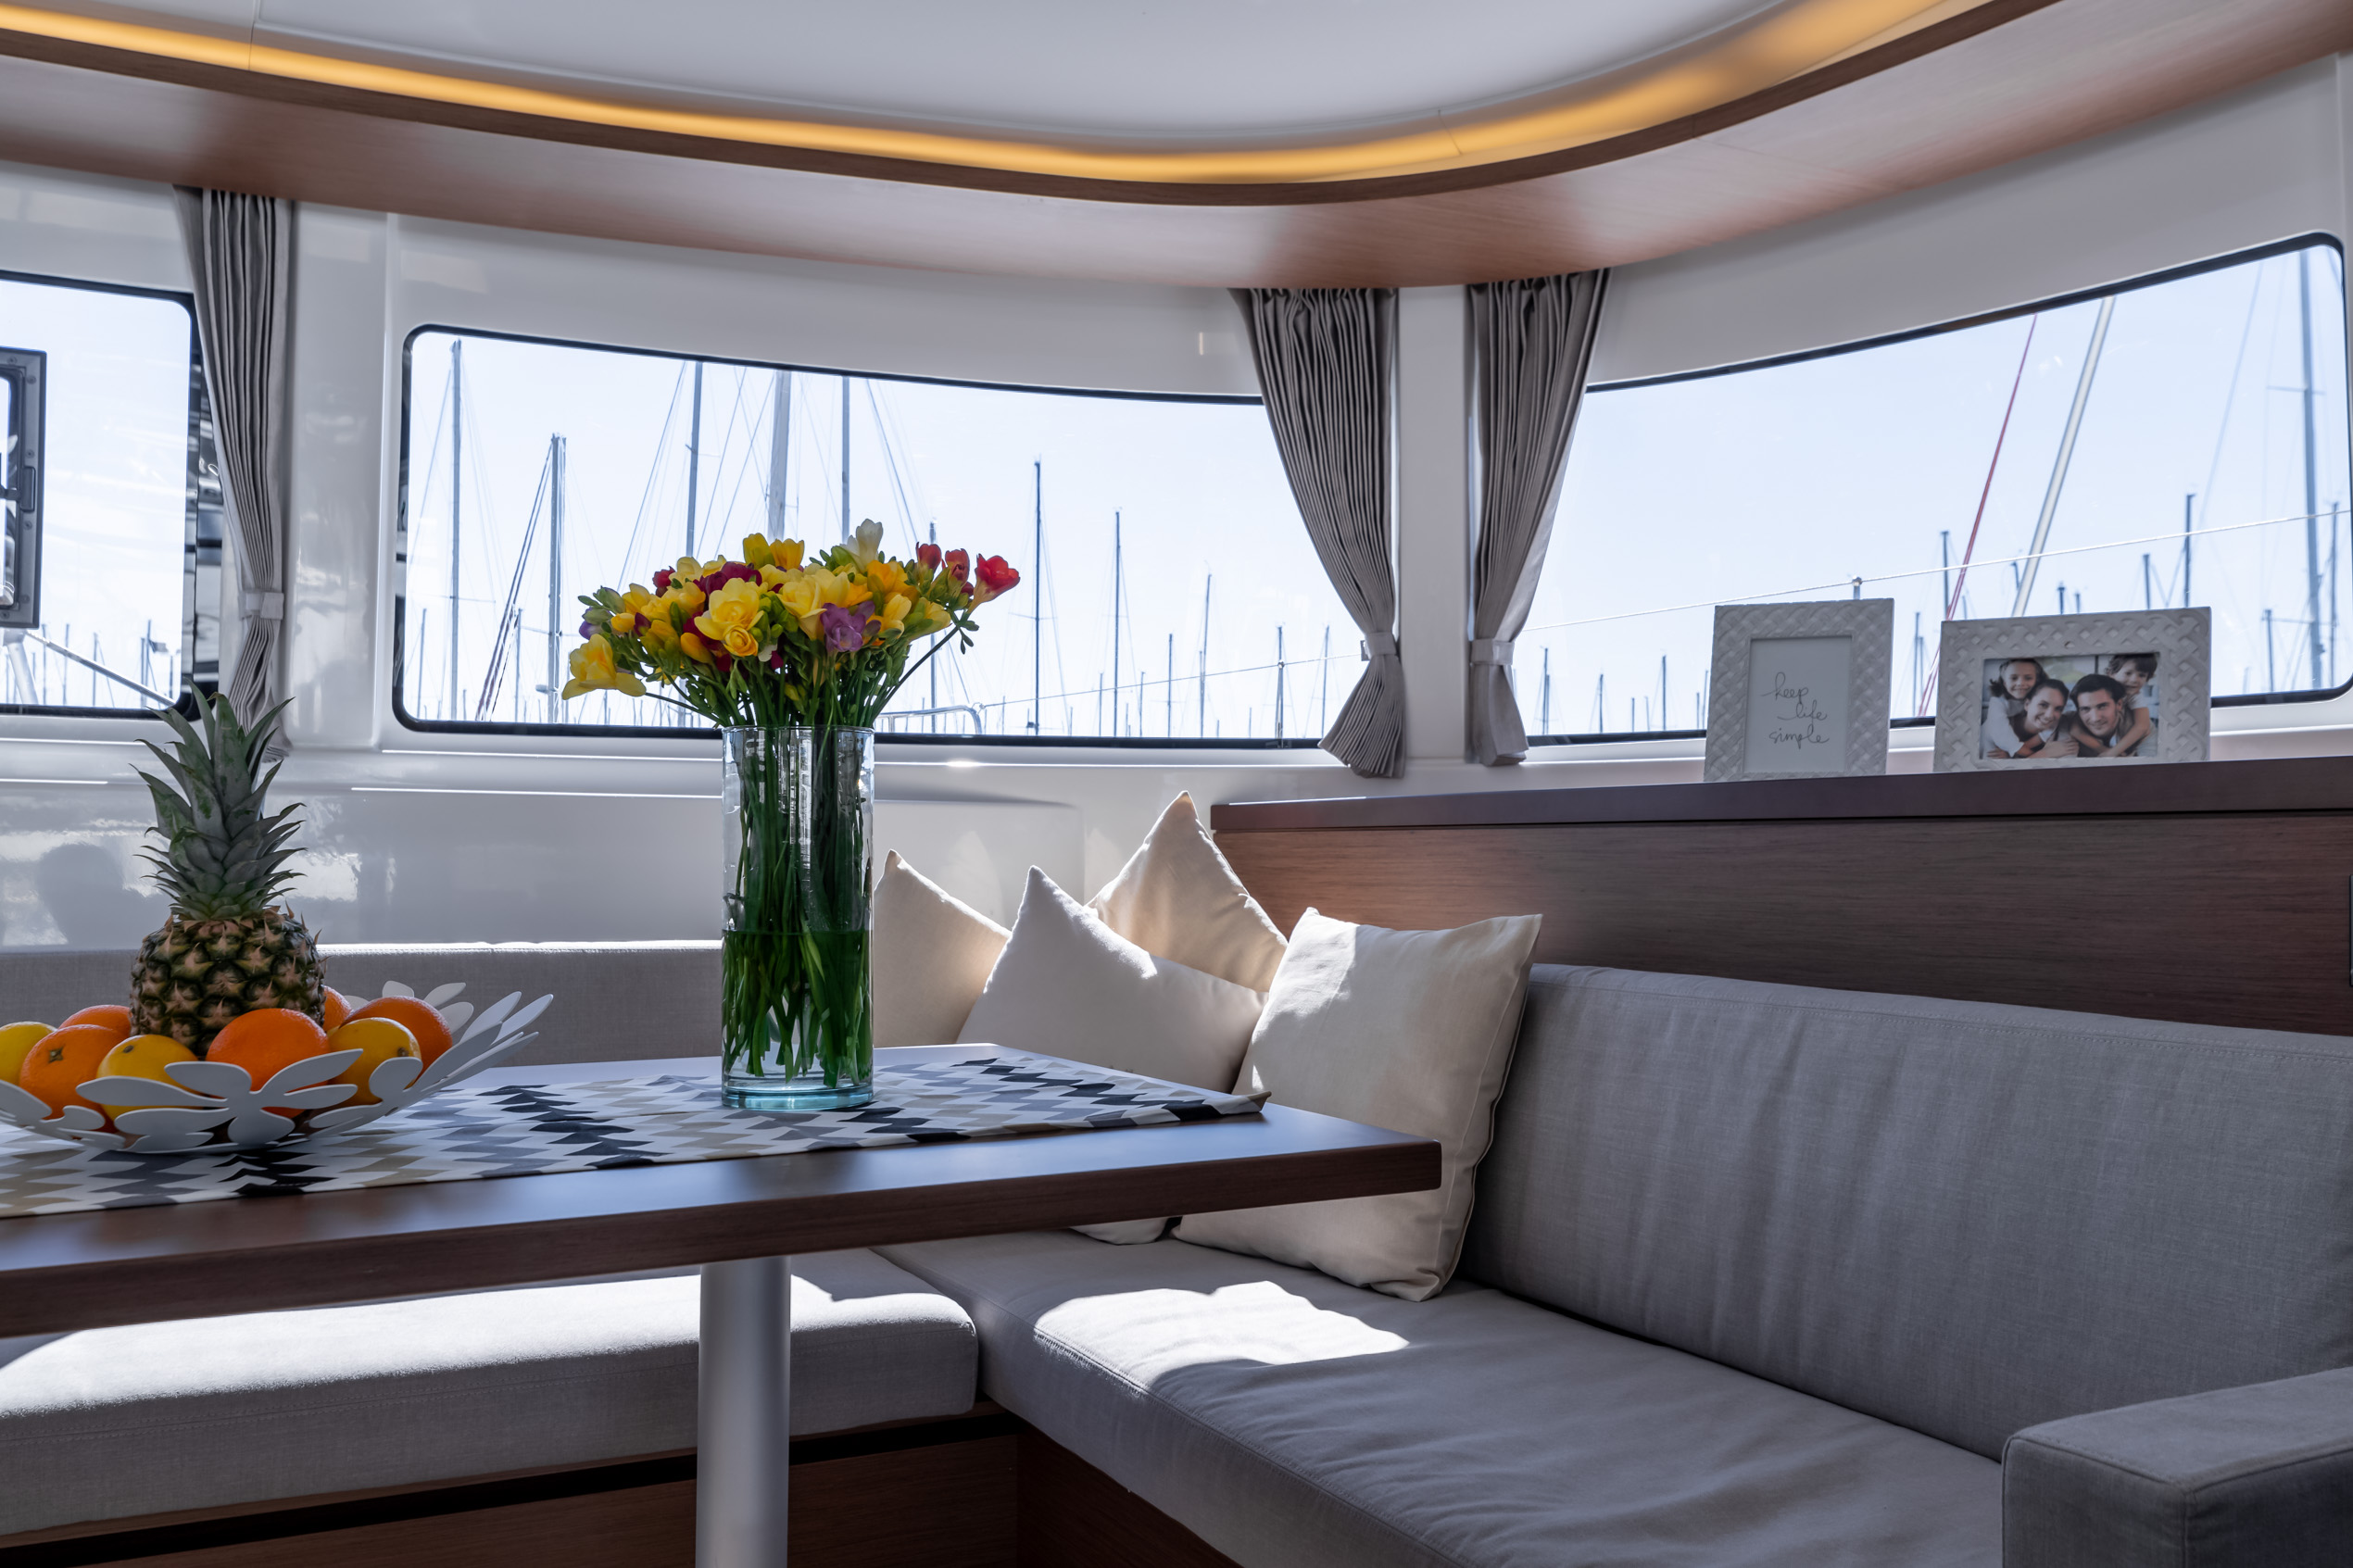 Lagoon 46 (2020) equipped with generator, A/C (sal (HANGOVER)  - 40